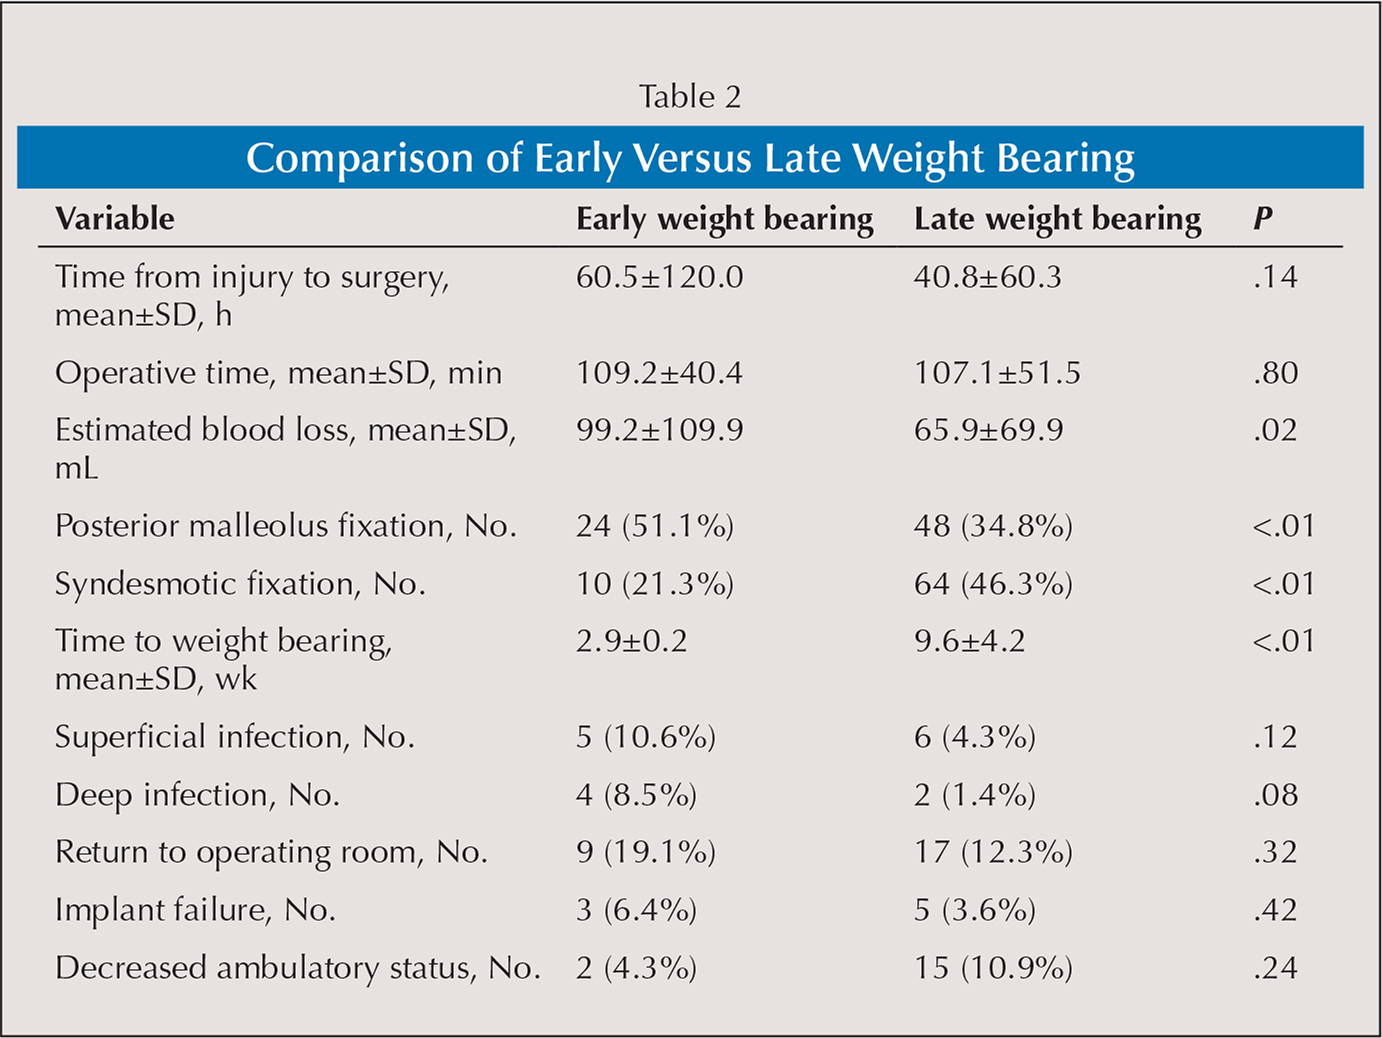 Comparison of Early Versus Late Weight Bearing